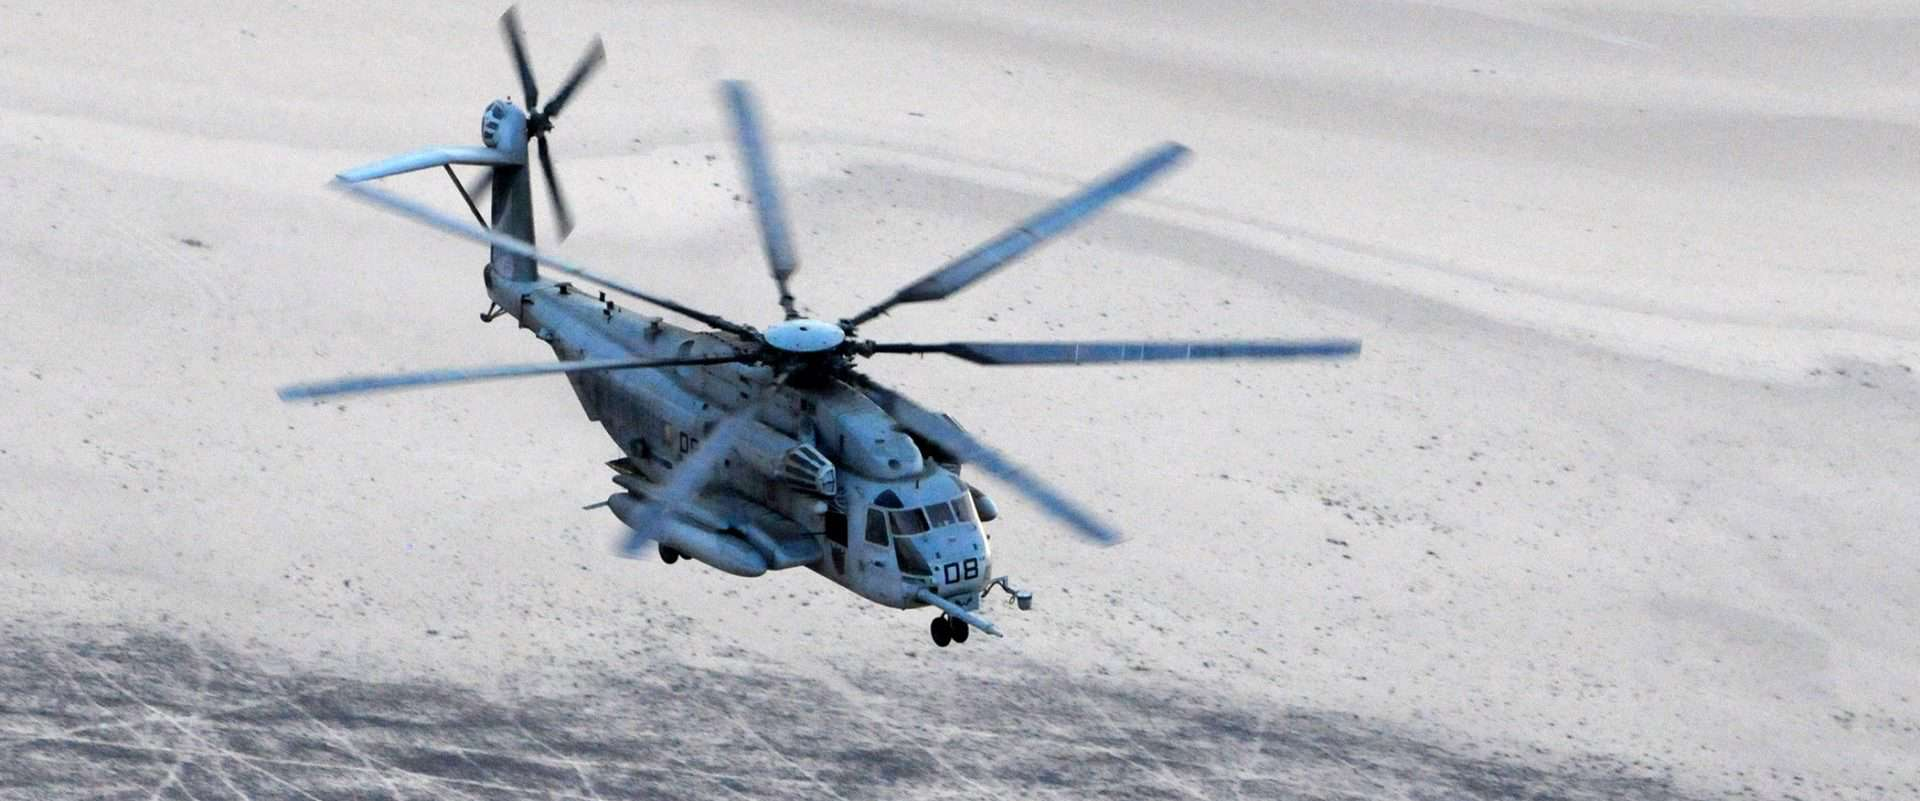 Questions and Answers, an MH-53 Pave Low helicopter flies over desert